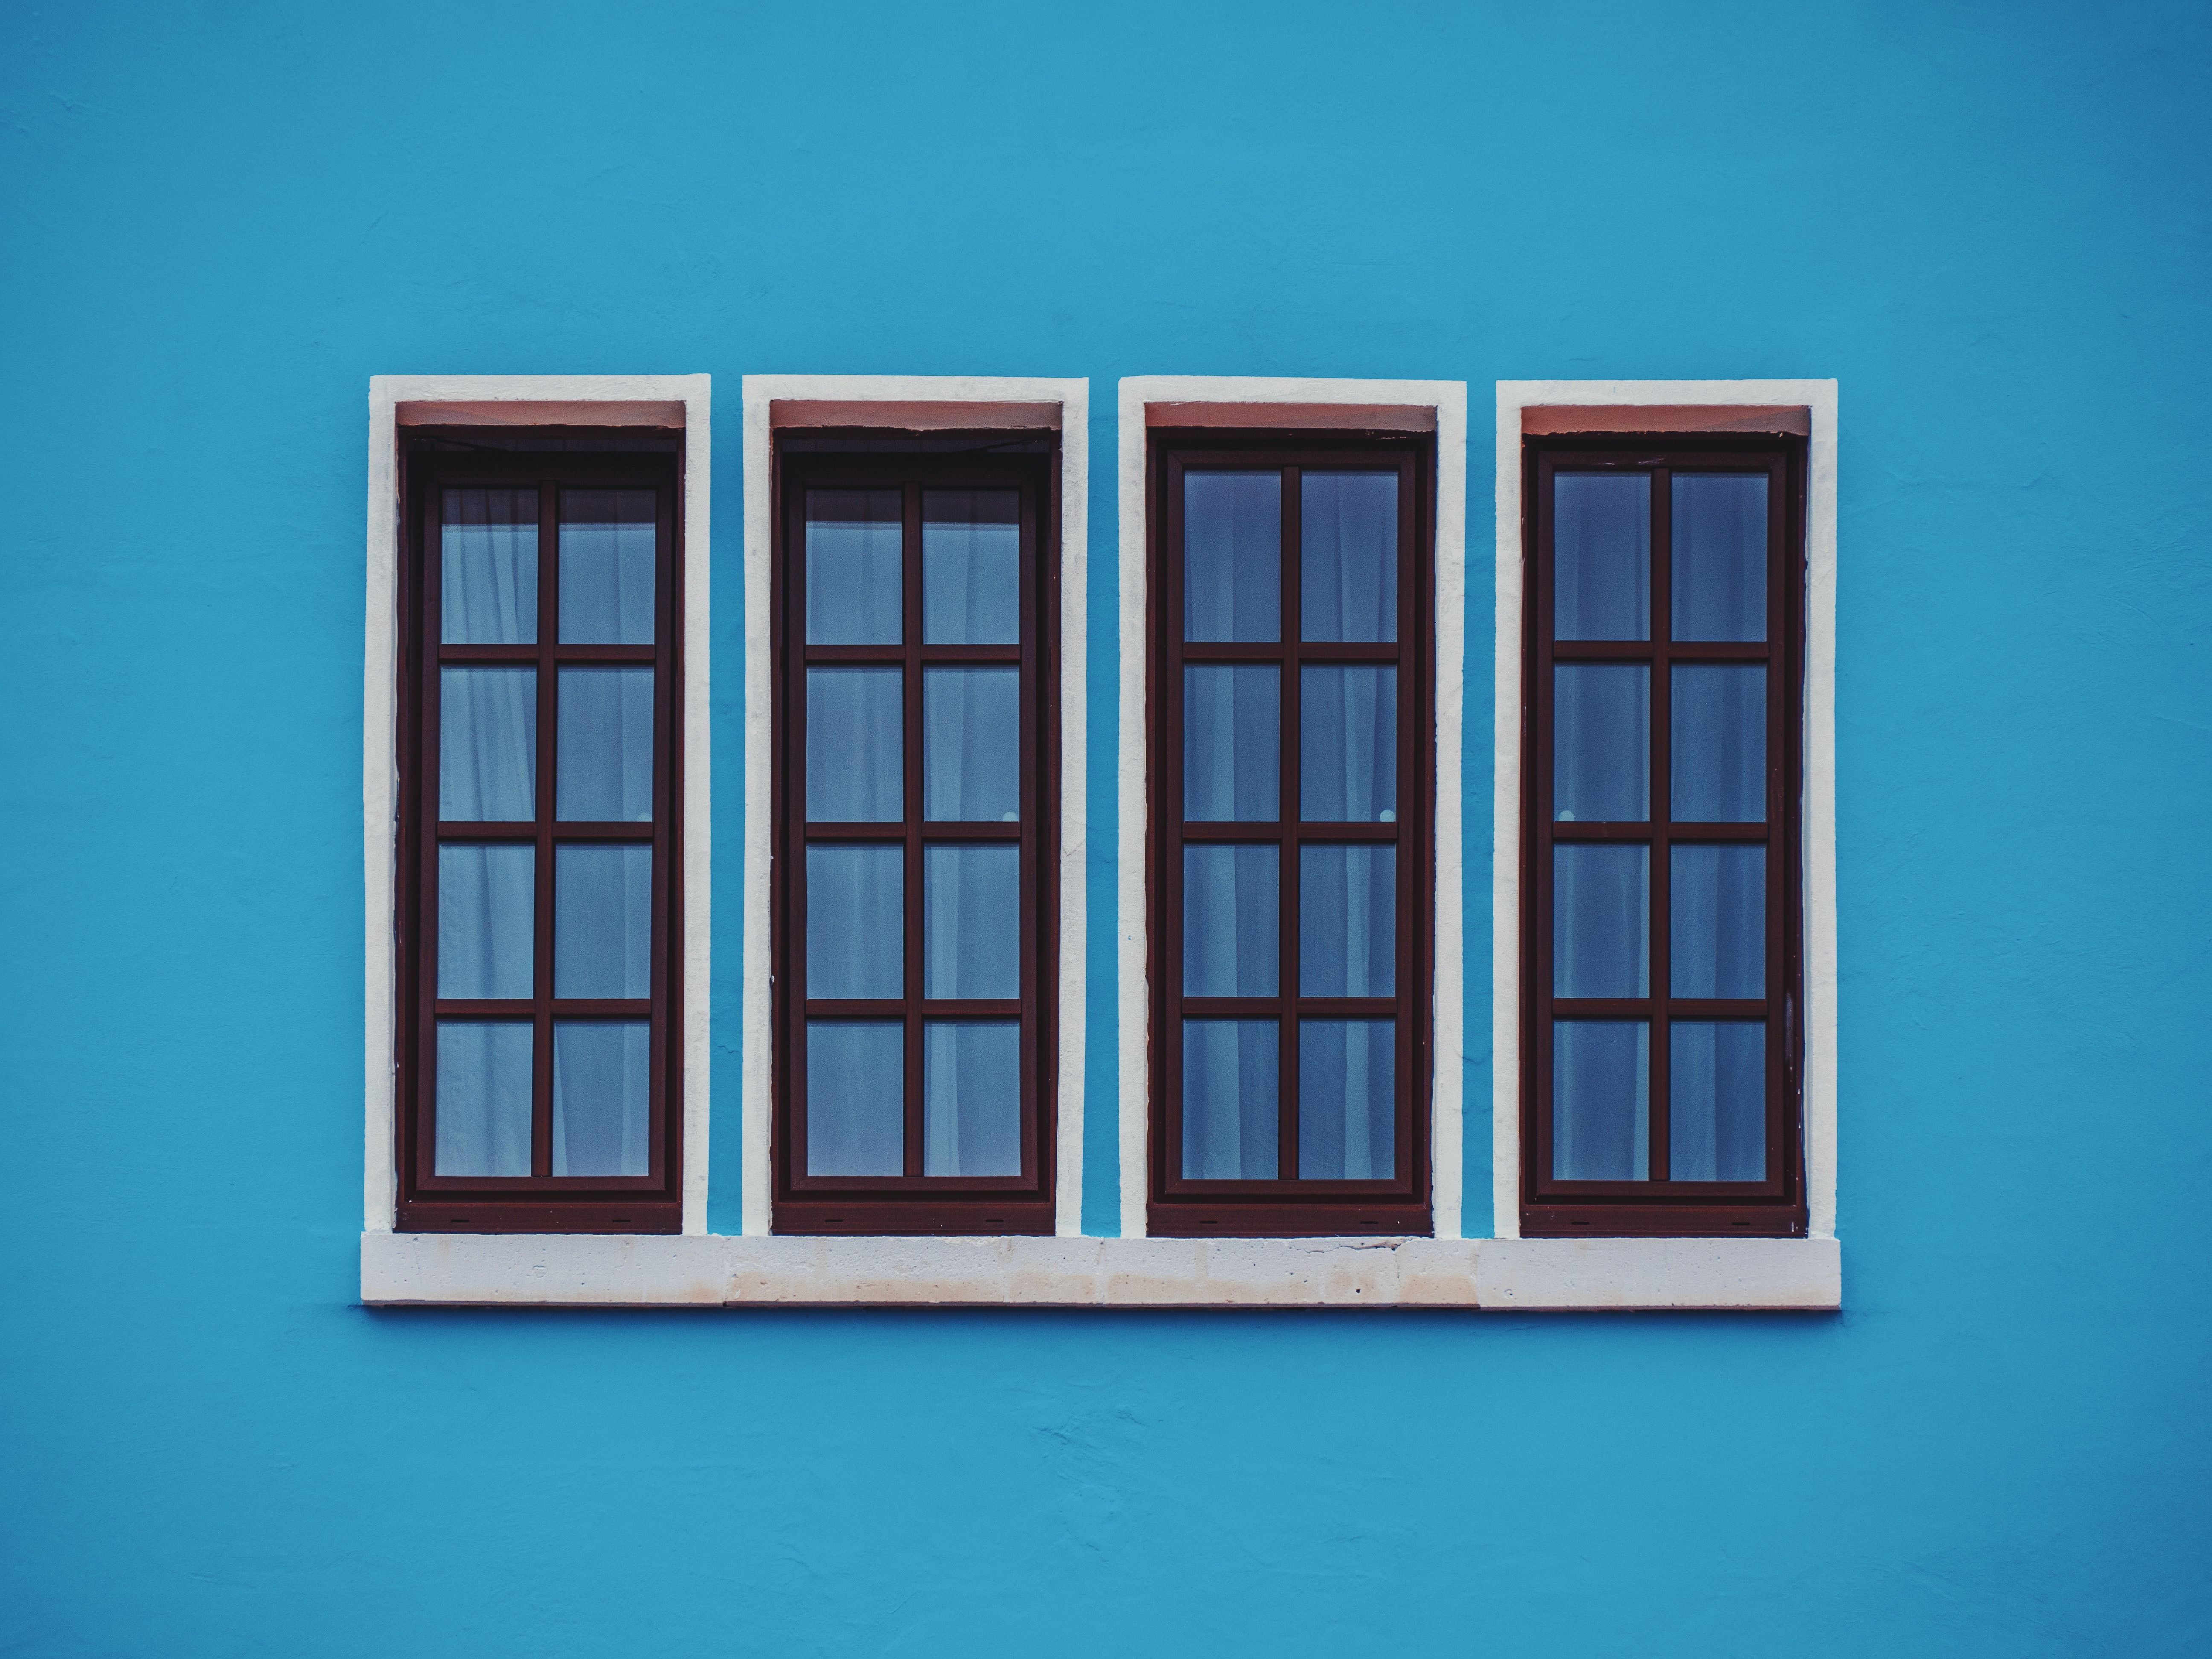 clear glass windows in blue concrete wall